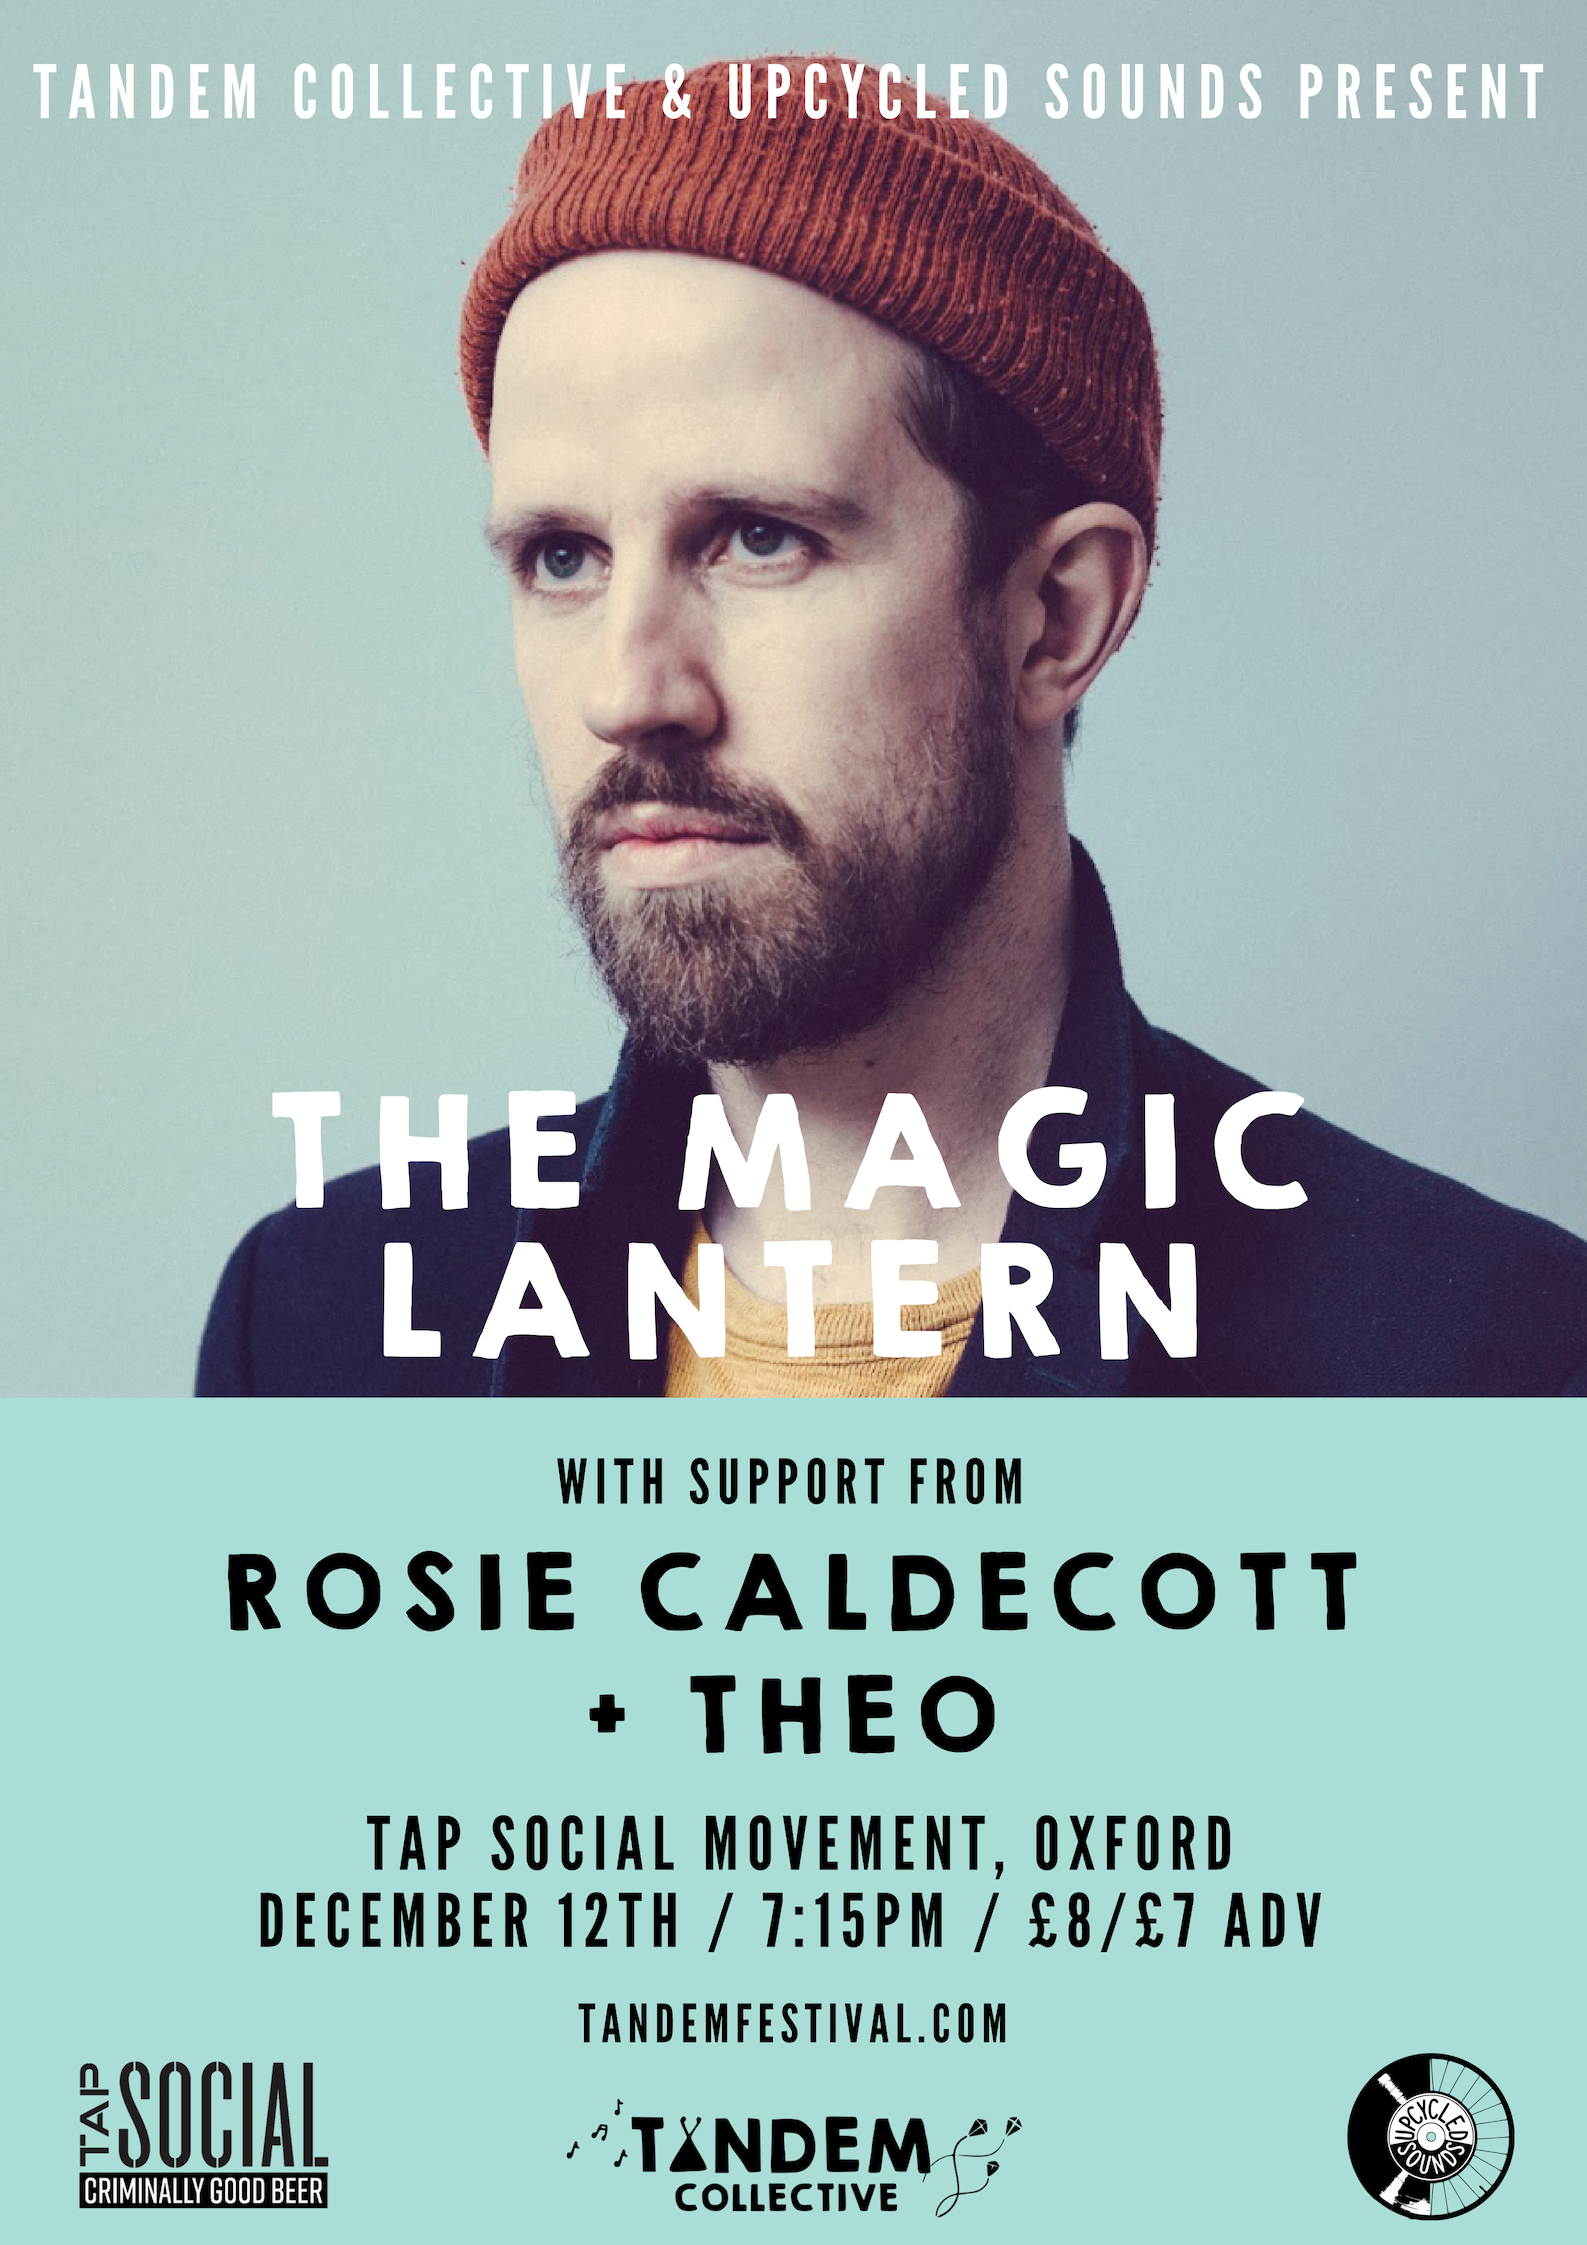 The Magic Lantern with support from Rosie Caldecott and Theo